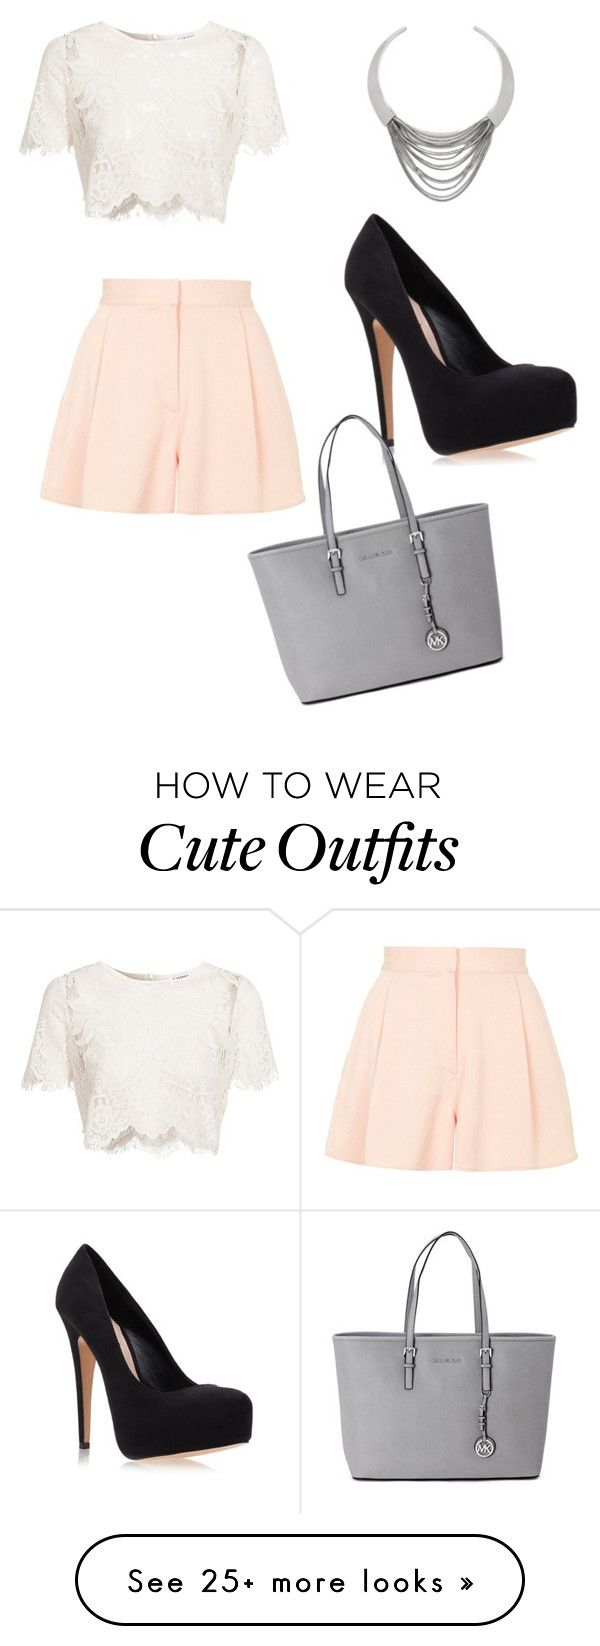 """Cute summer outfit"" by alexisazran on Polyvore featuring moda, Glamorous, Diane Von Furstenberg, Topshop, Carvela Kurt Geiger i Michael Kors"